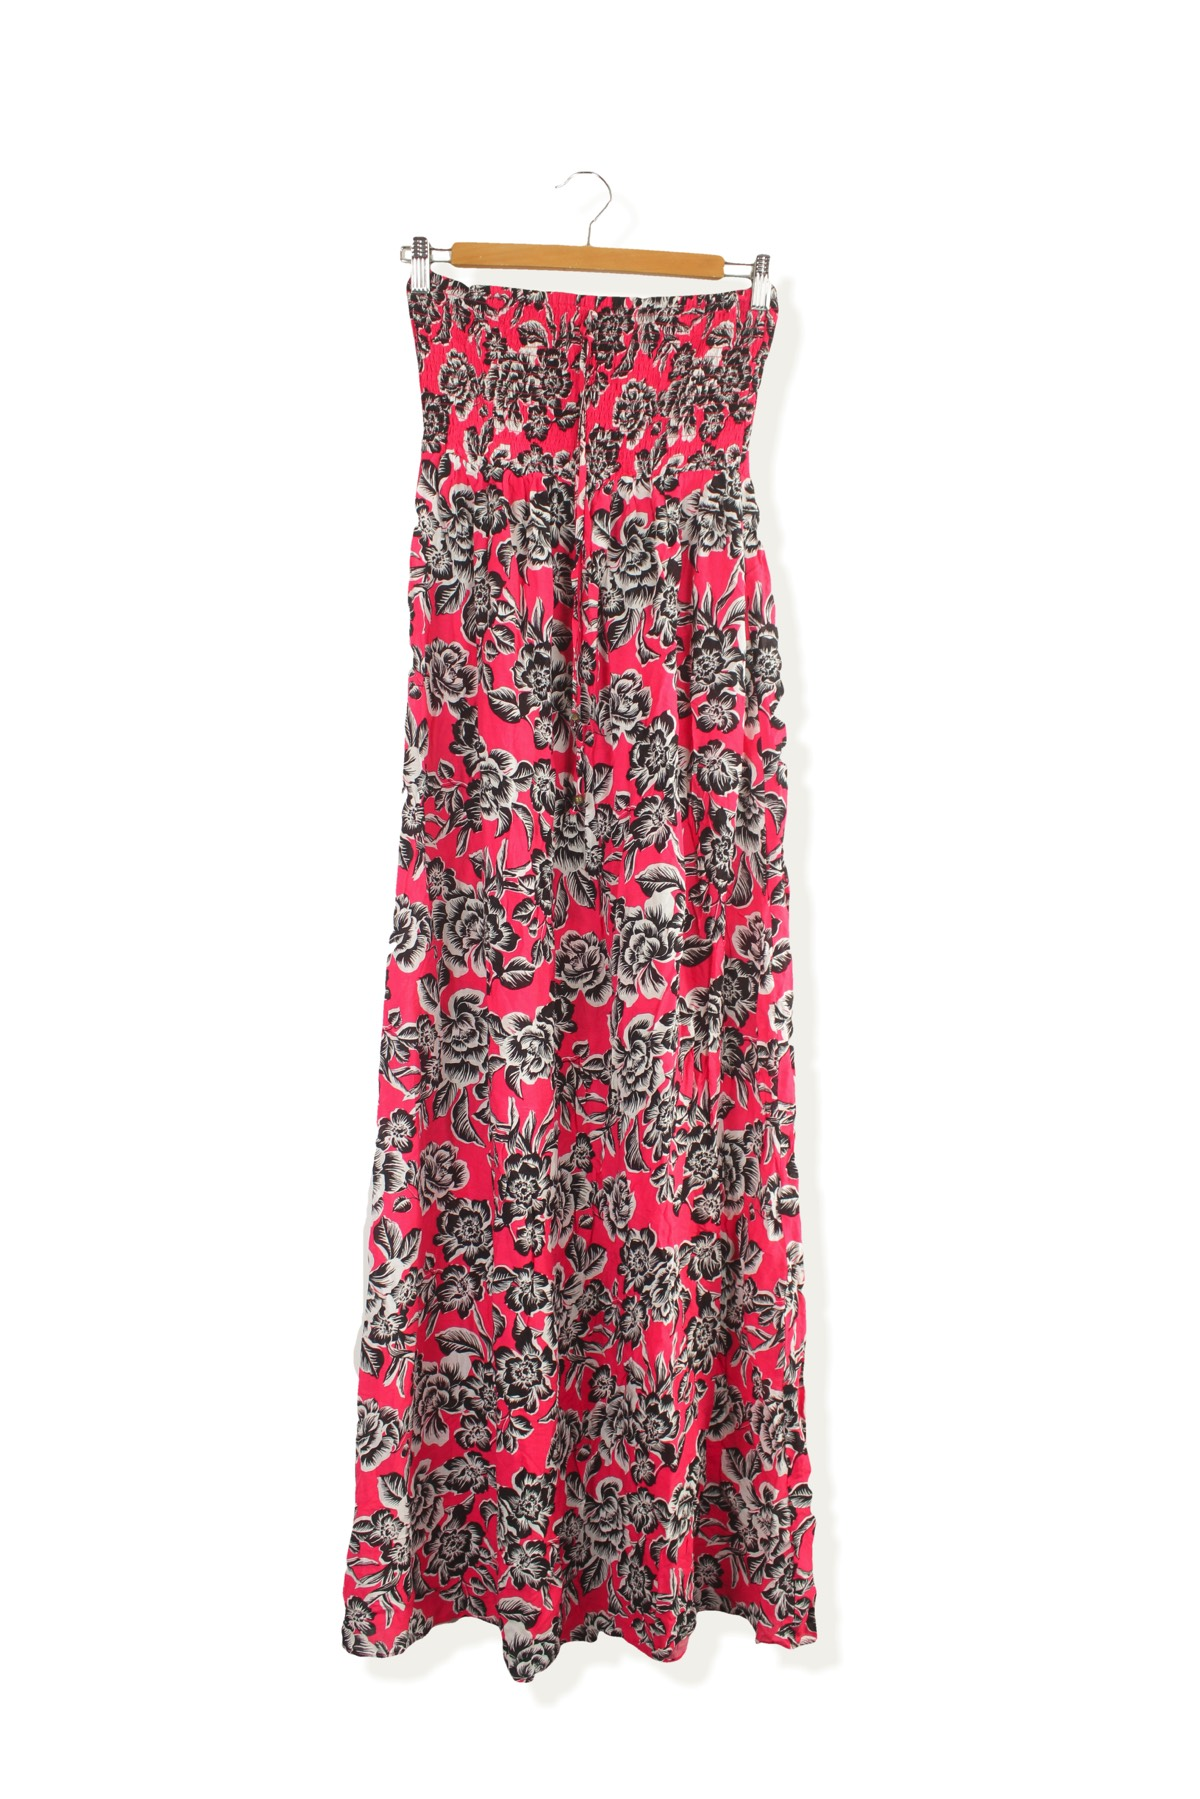 eba13844af2 HomeWomenNew Look pink black floral pattern summer bandeau maxi dress size  8. Previous. New Look Second-Hand Clothing